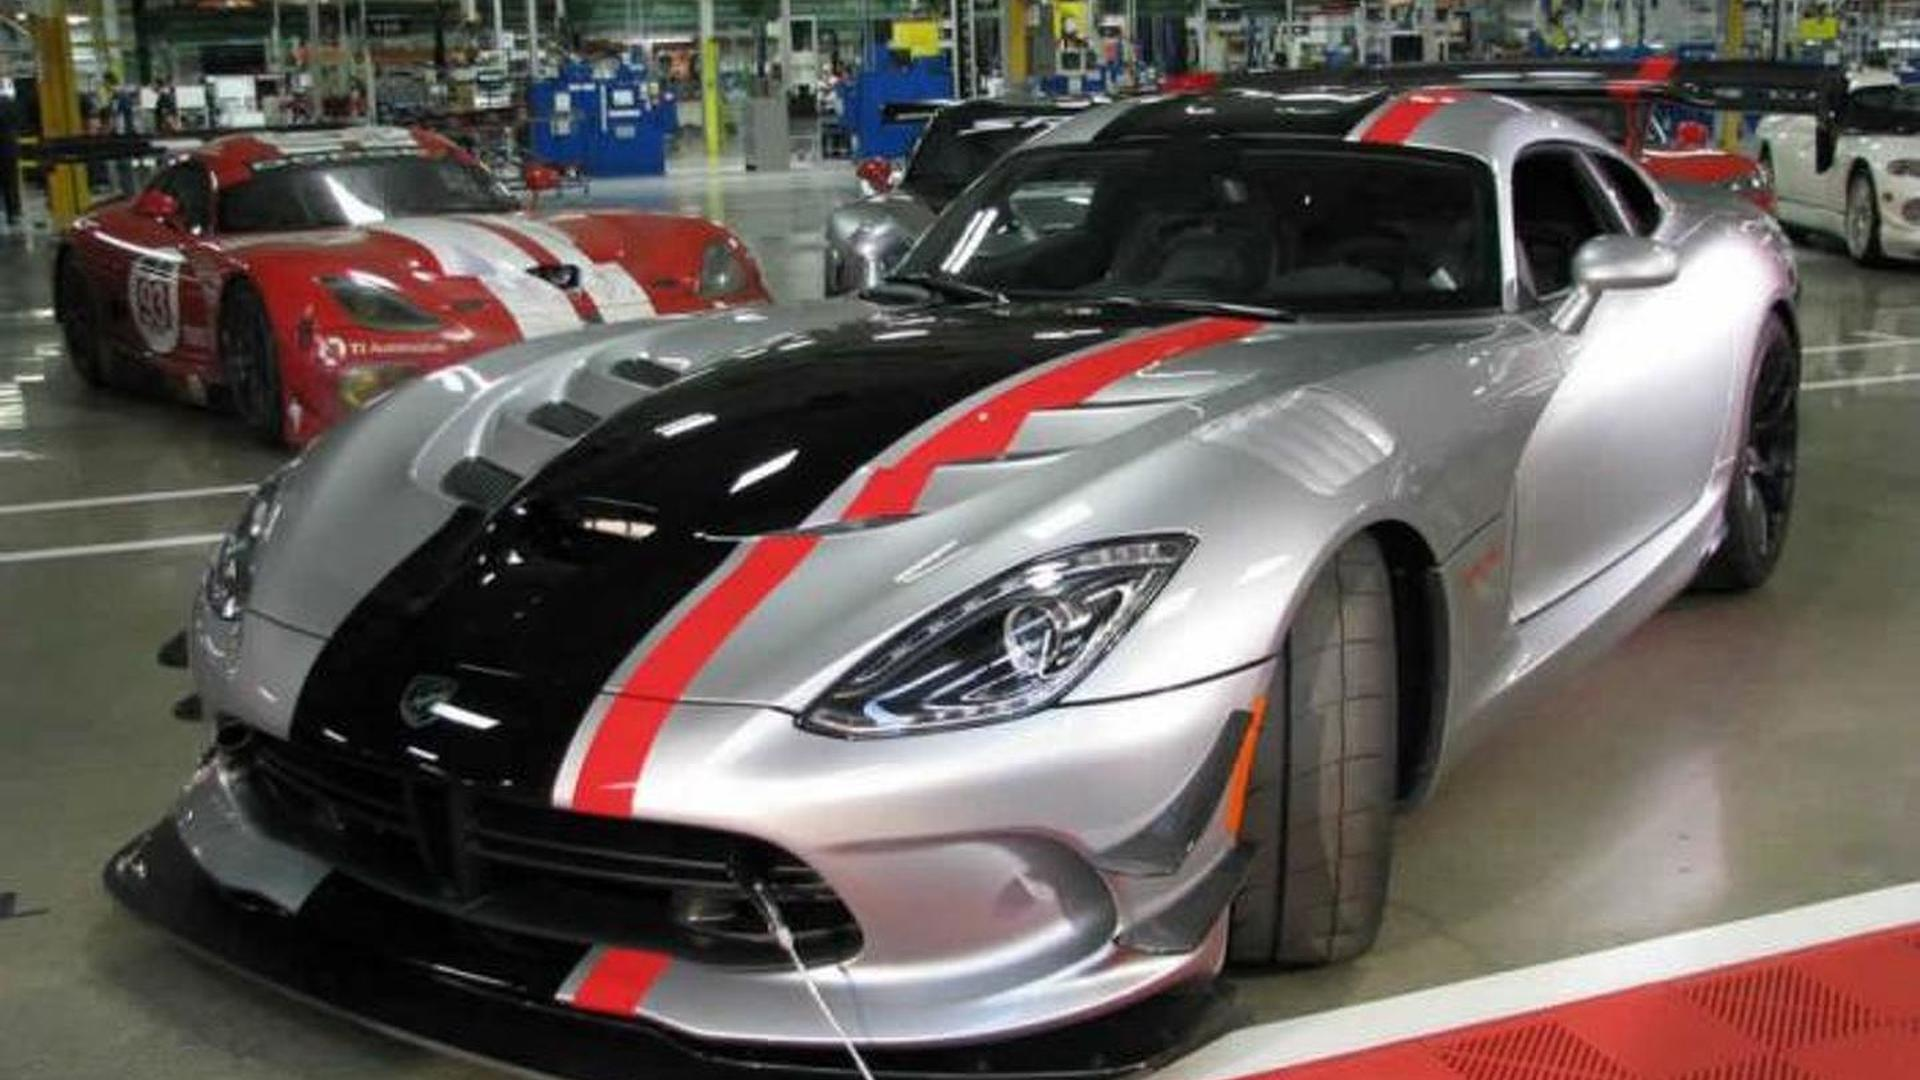 Dodge shows off 2016 Viper ACR in live images